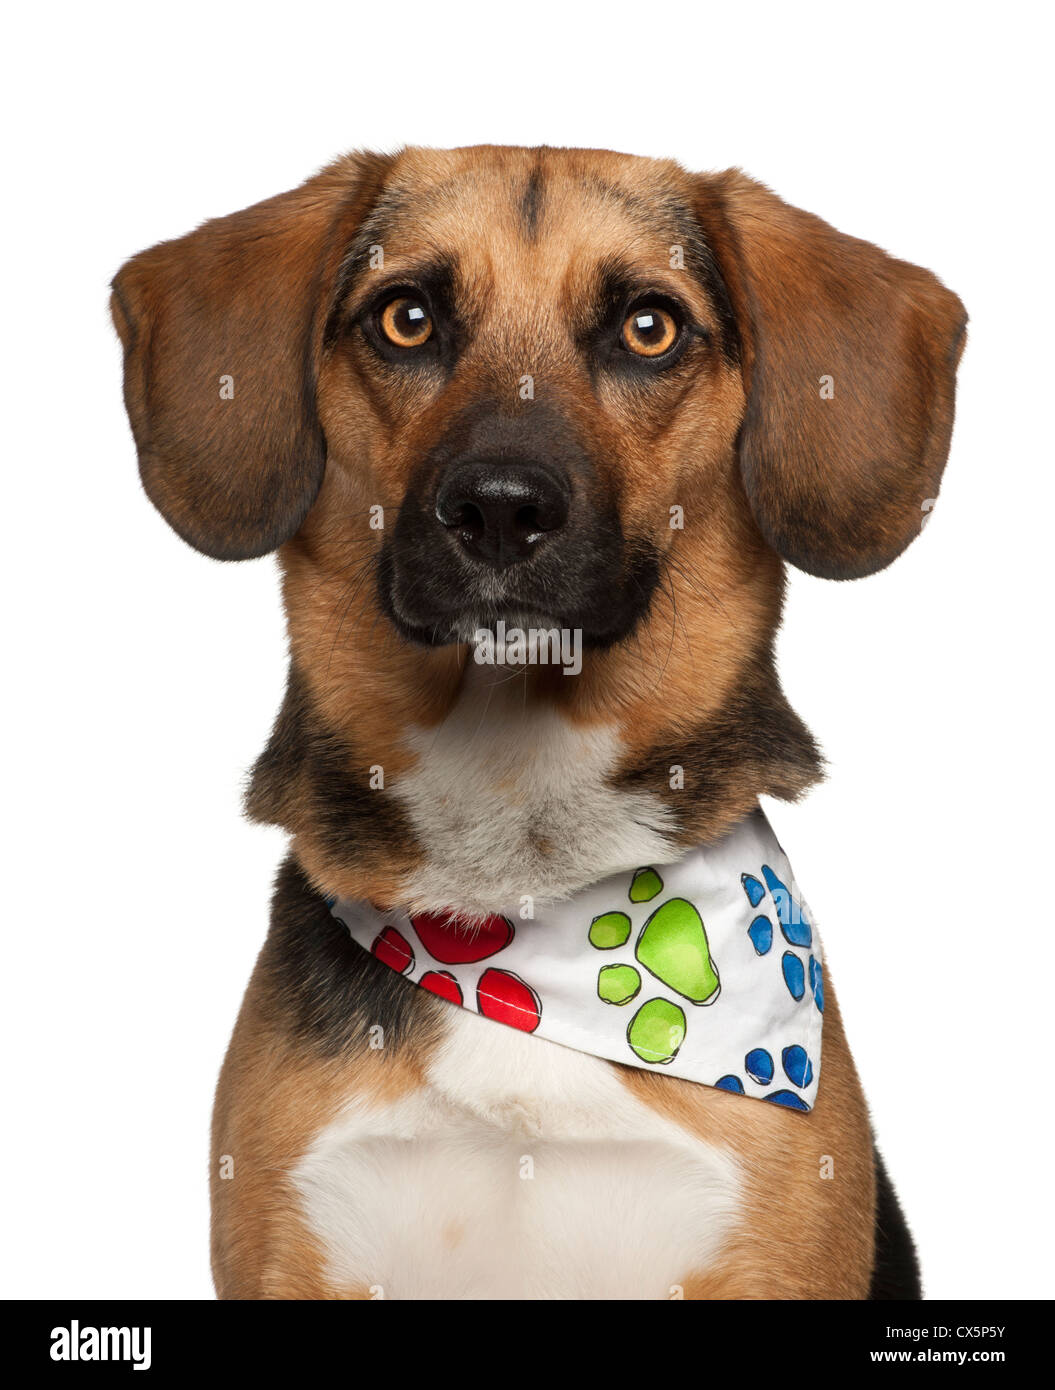 Dog cross bred with beagle, 2 years old, wearing neckerchief against white background - Stock Image